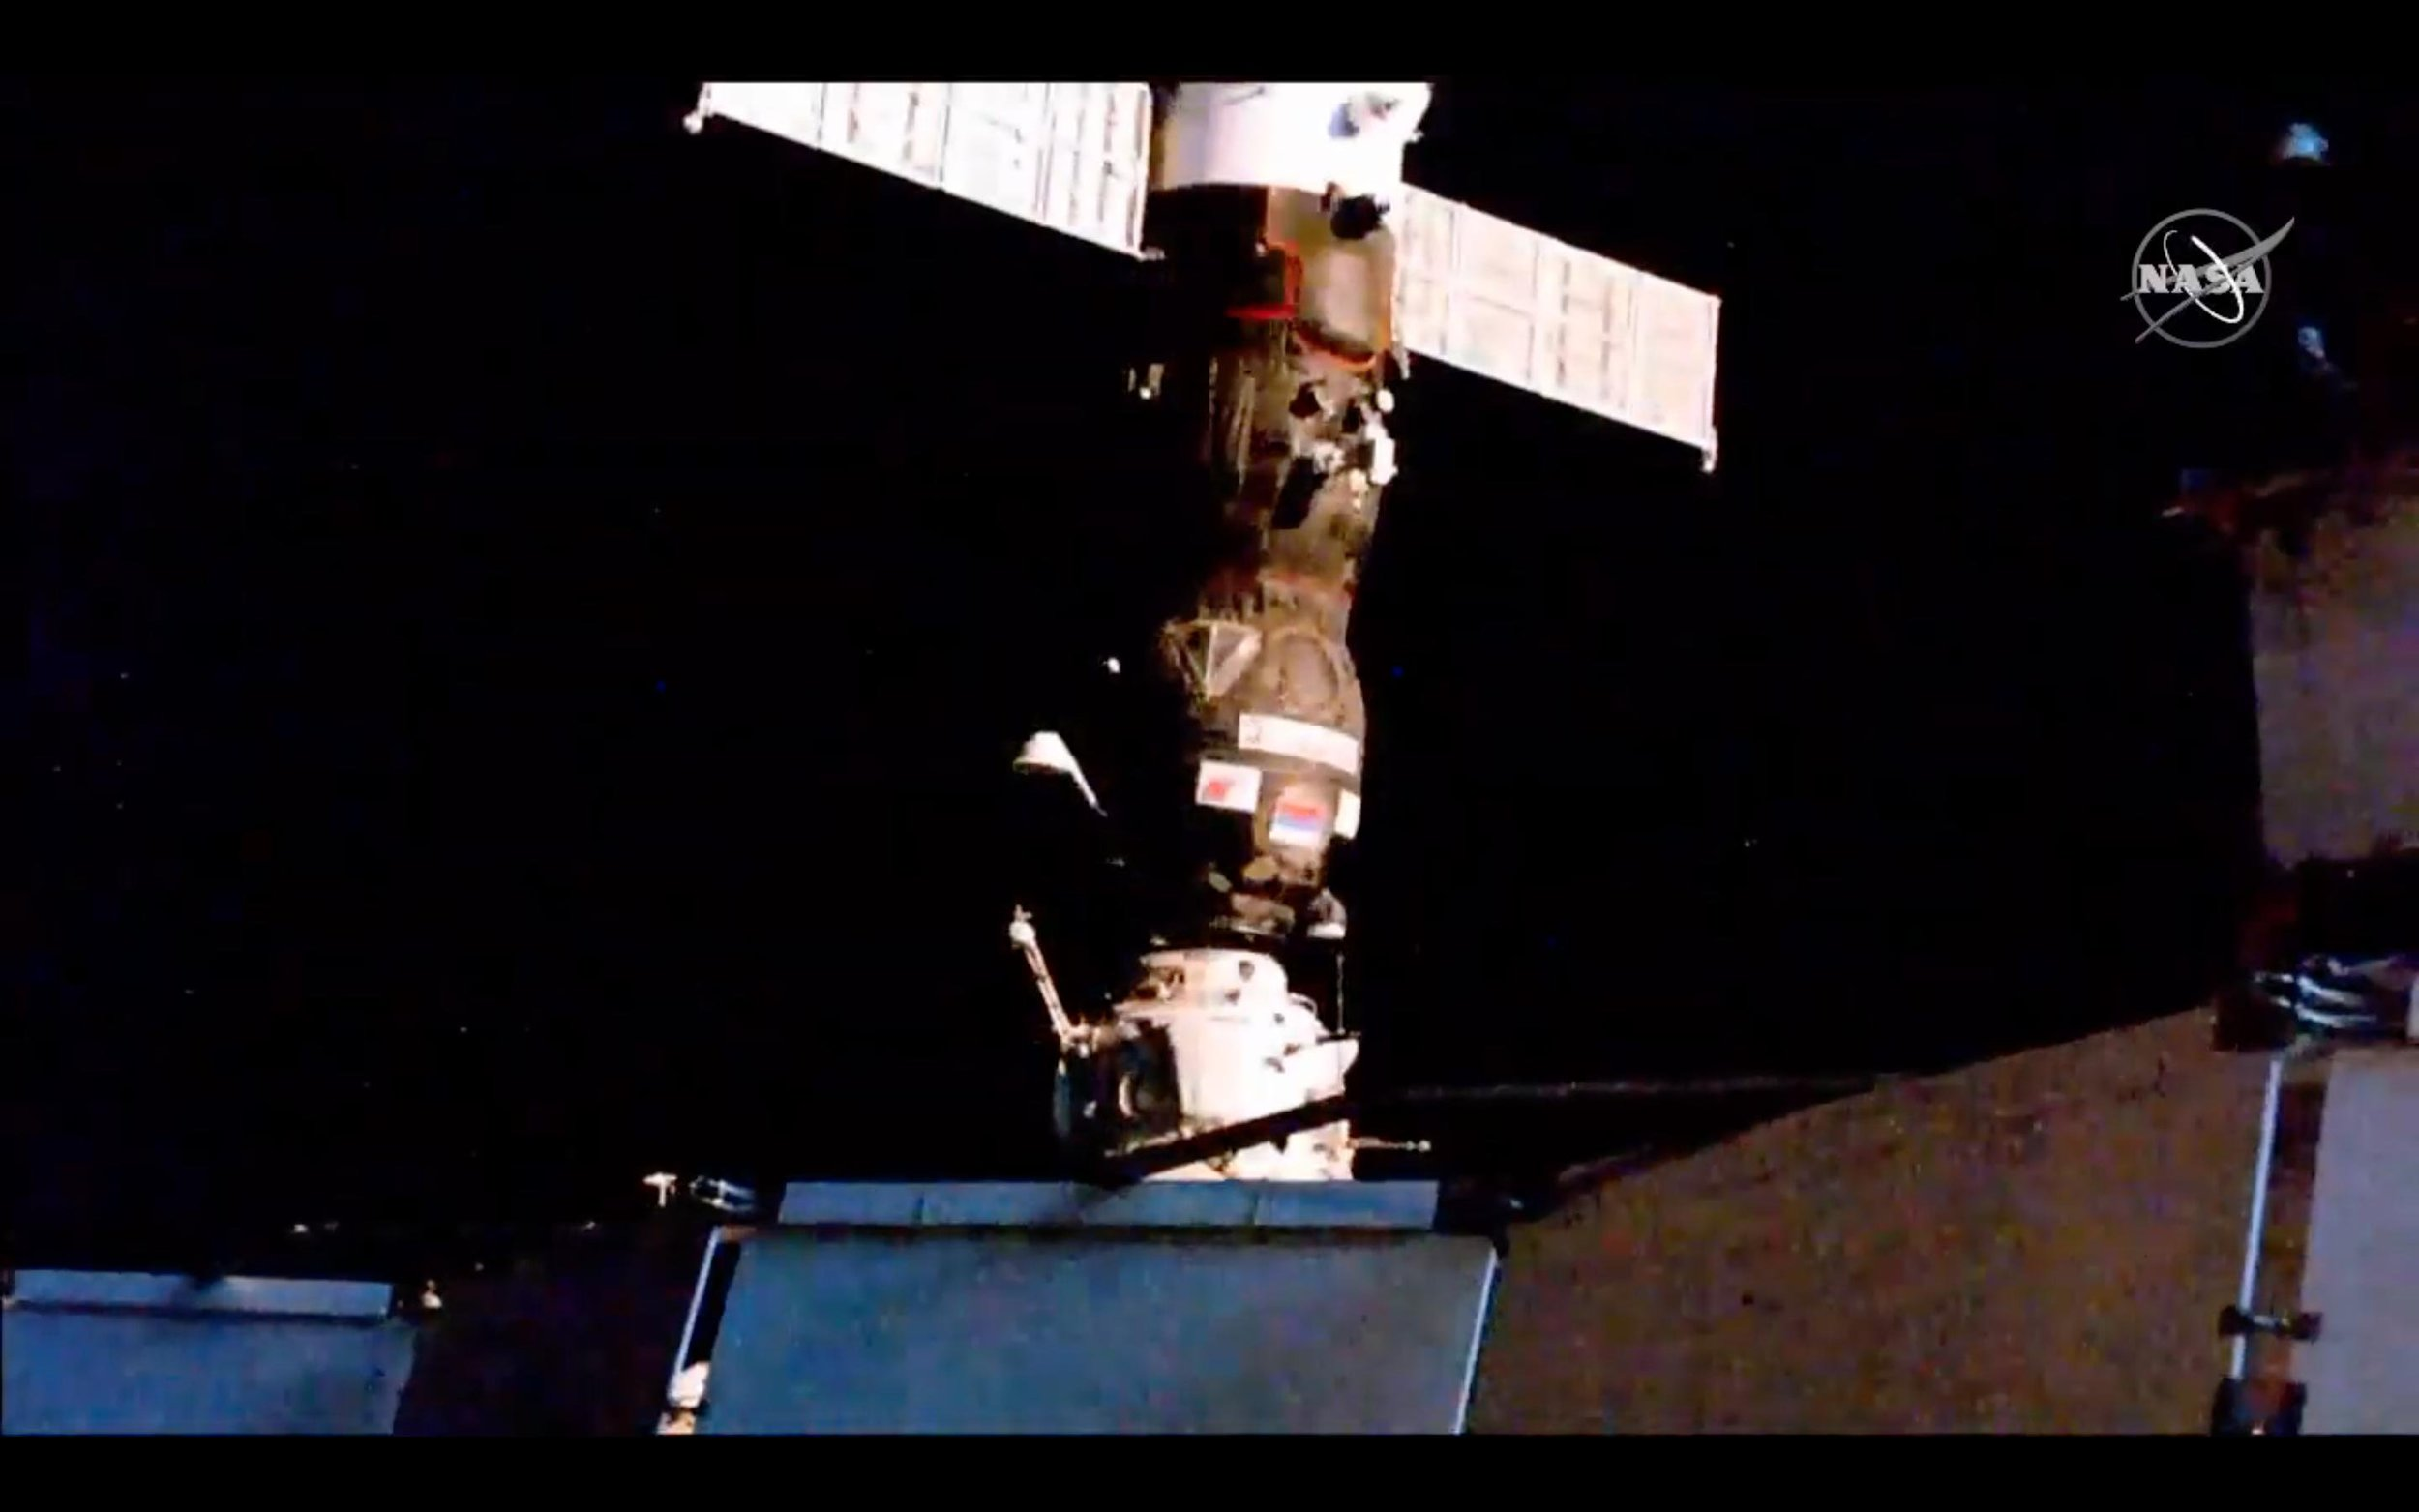 Progress MS-12 moments after making contact with the Pirs module. Credit: NASA